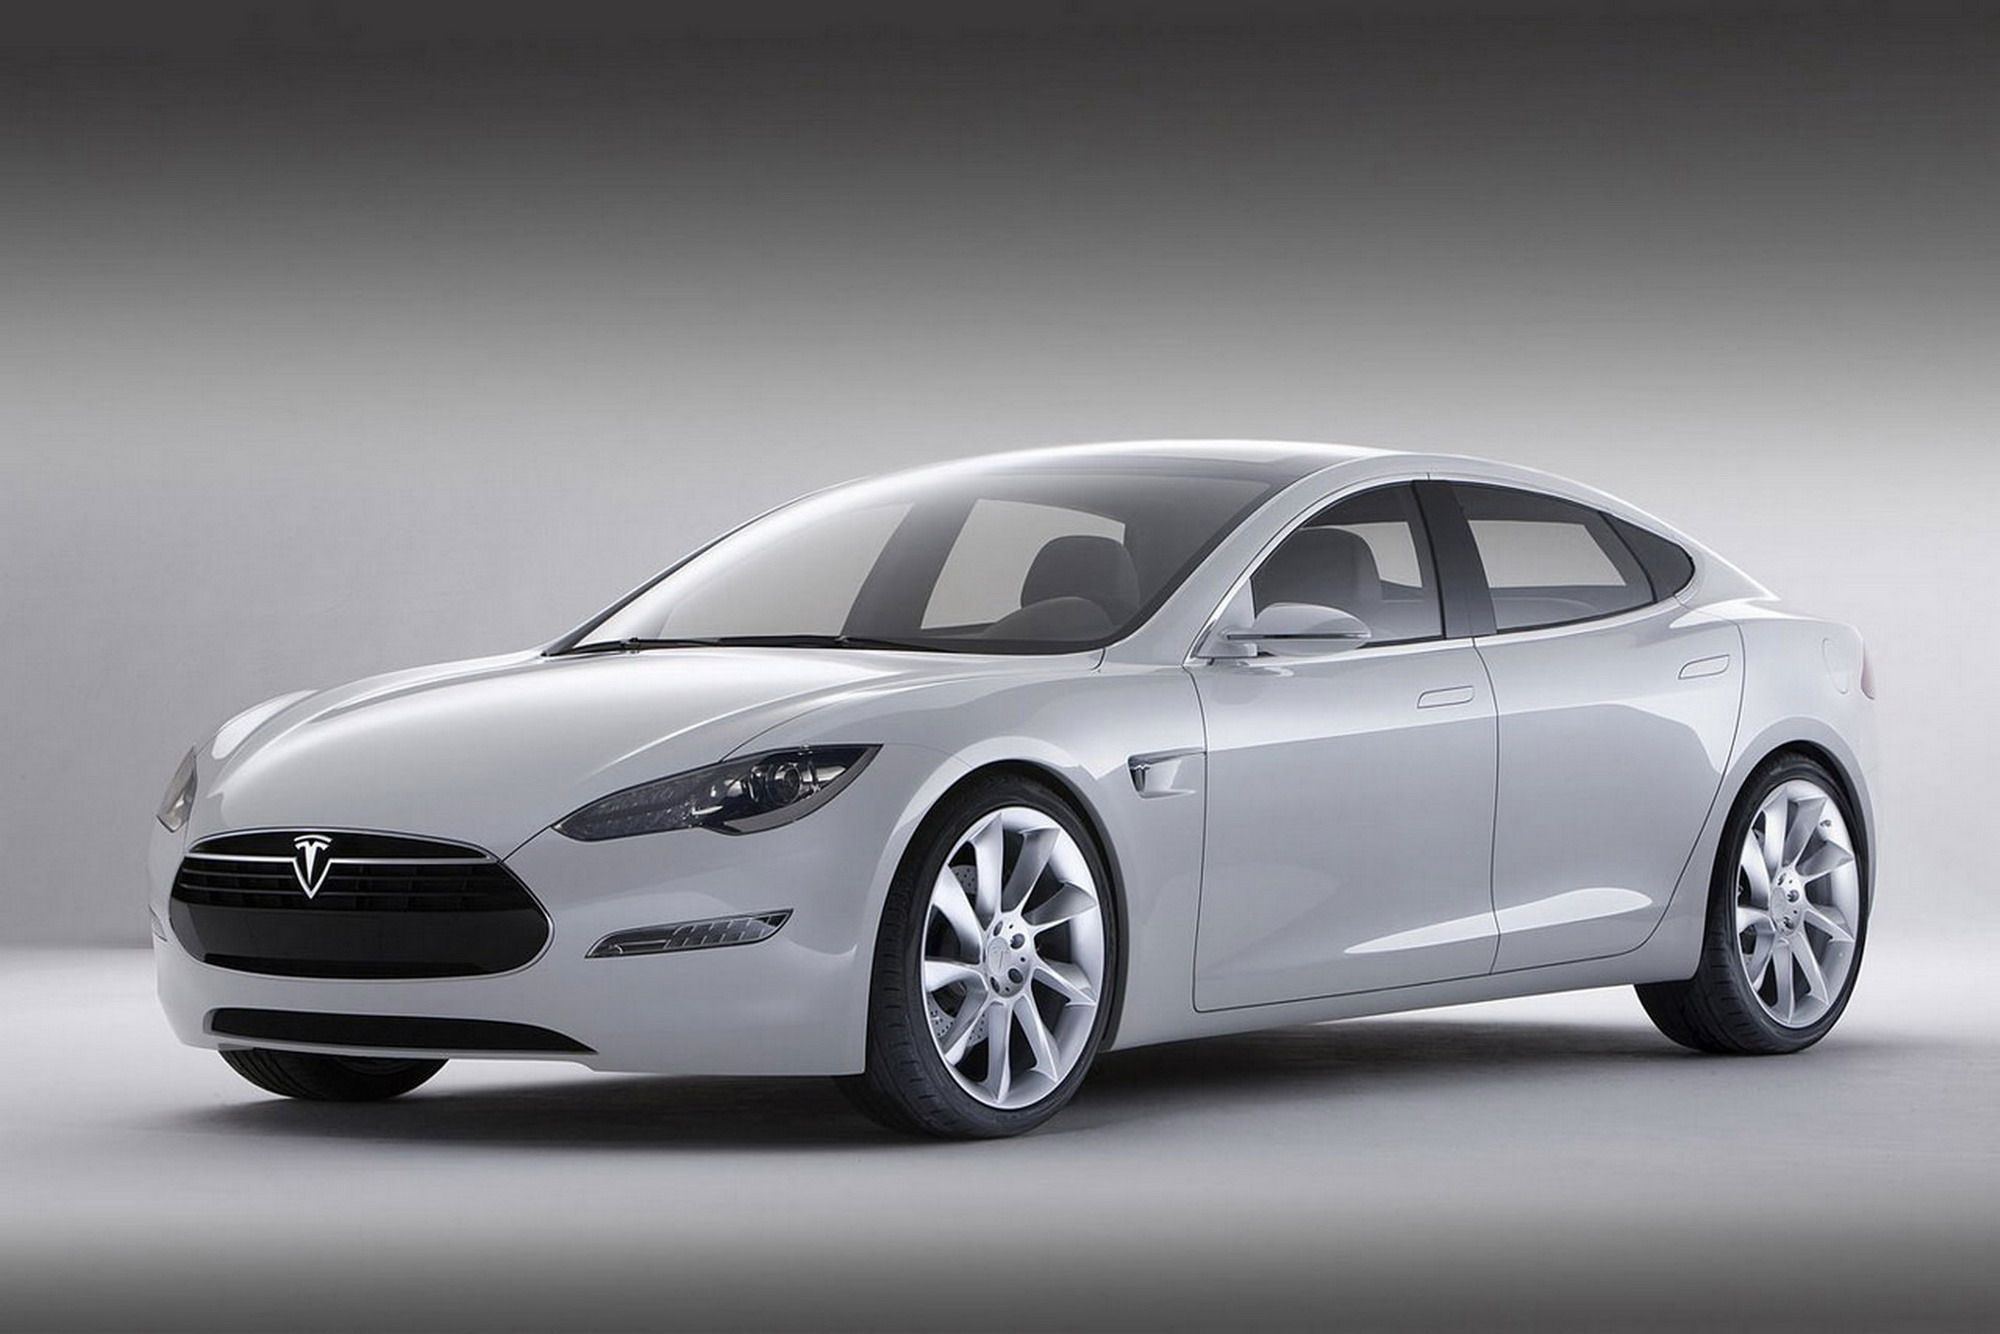 Tesla model s fastest luxury sedan to date 0 60 in 4 2 seconds